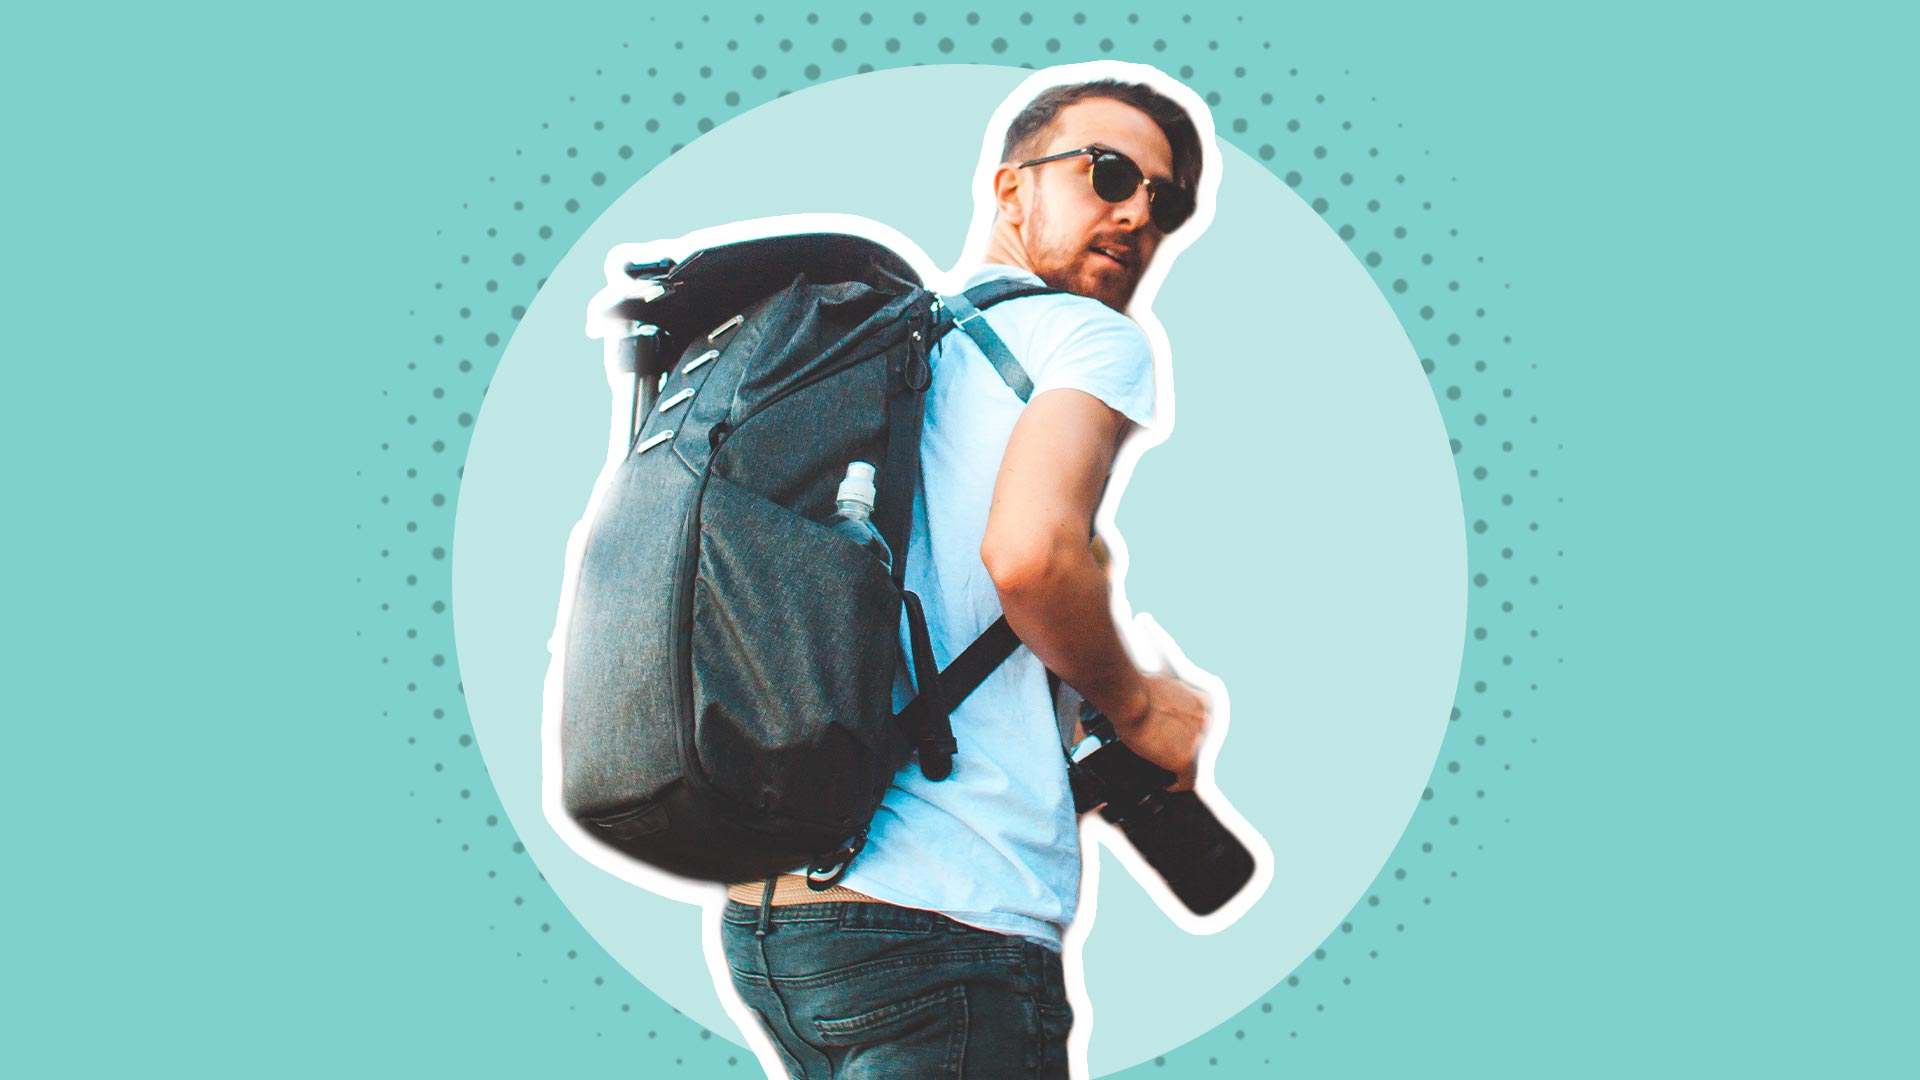 6 tips you need to know on how to become a digital nomad without risk